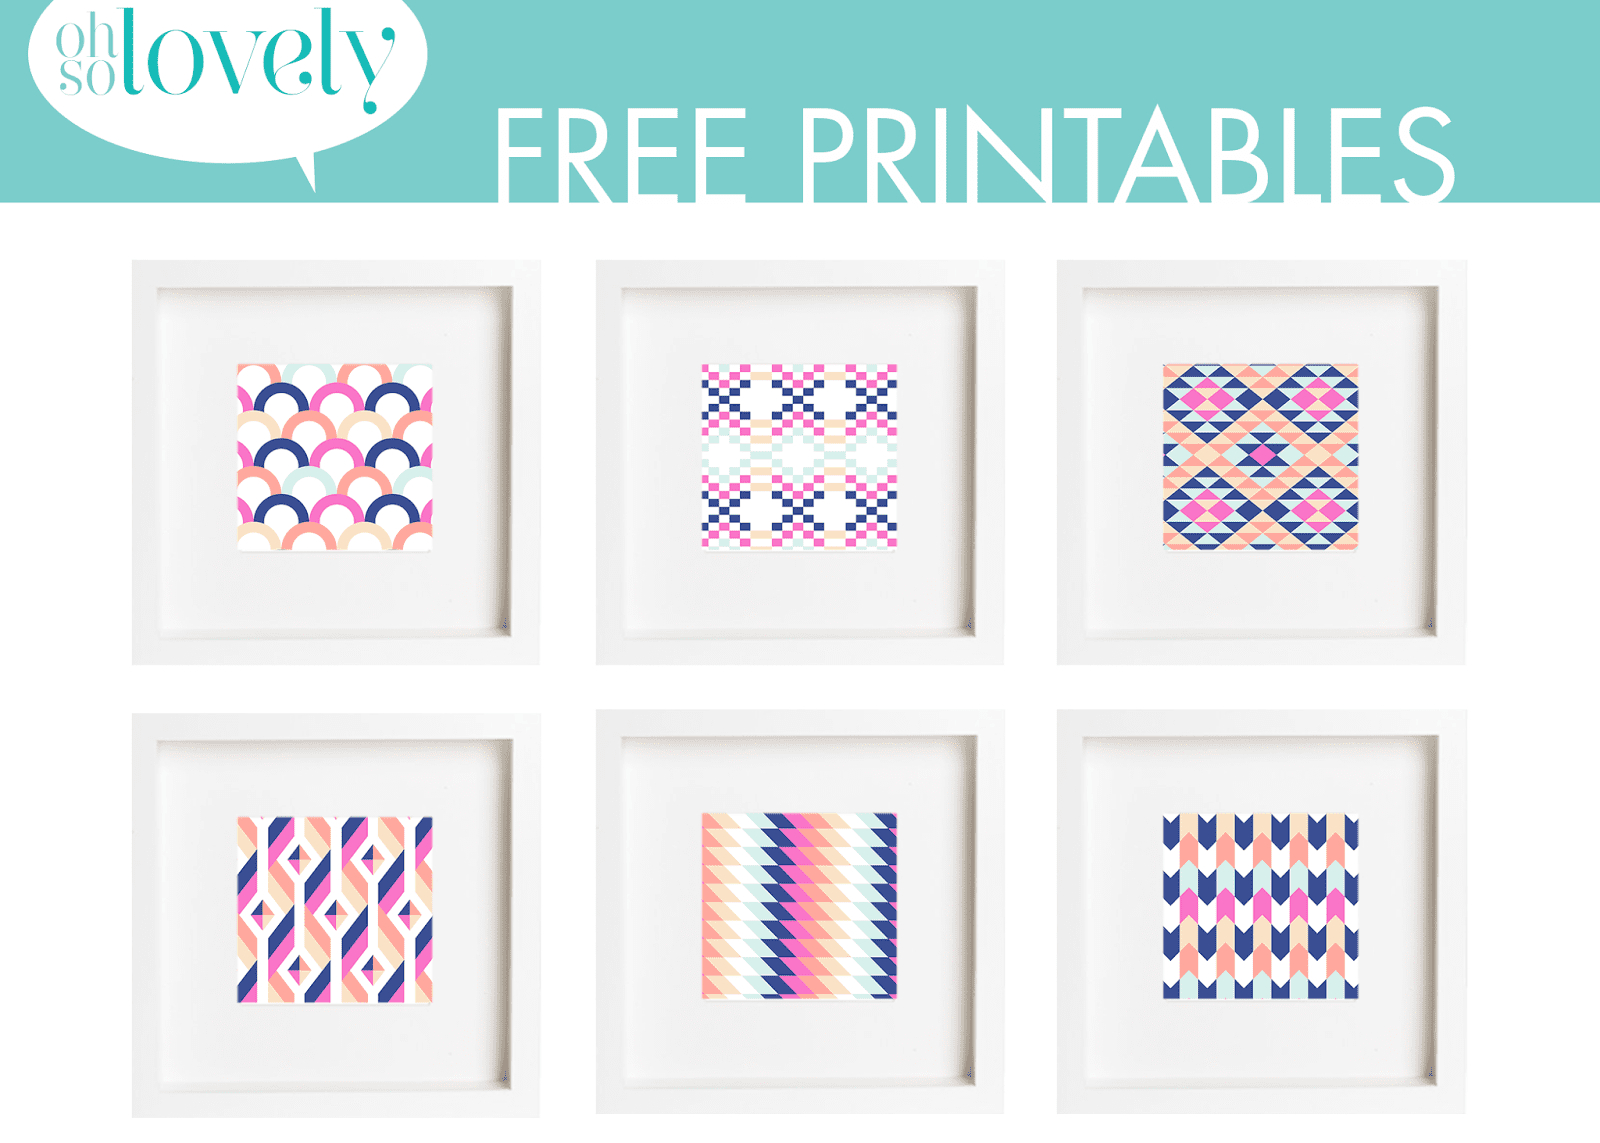 11 Places To Find Free, Printable Wall Art Online - Free Printable Art Pictures